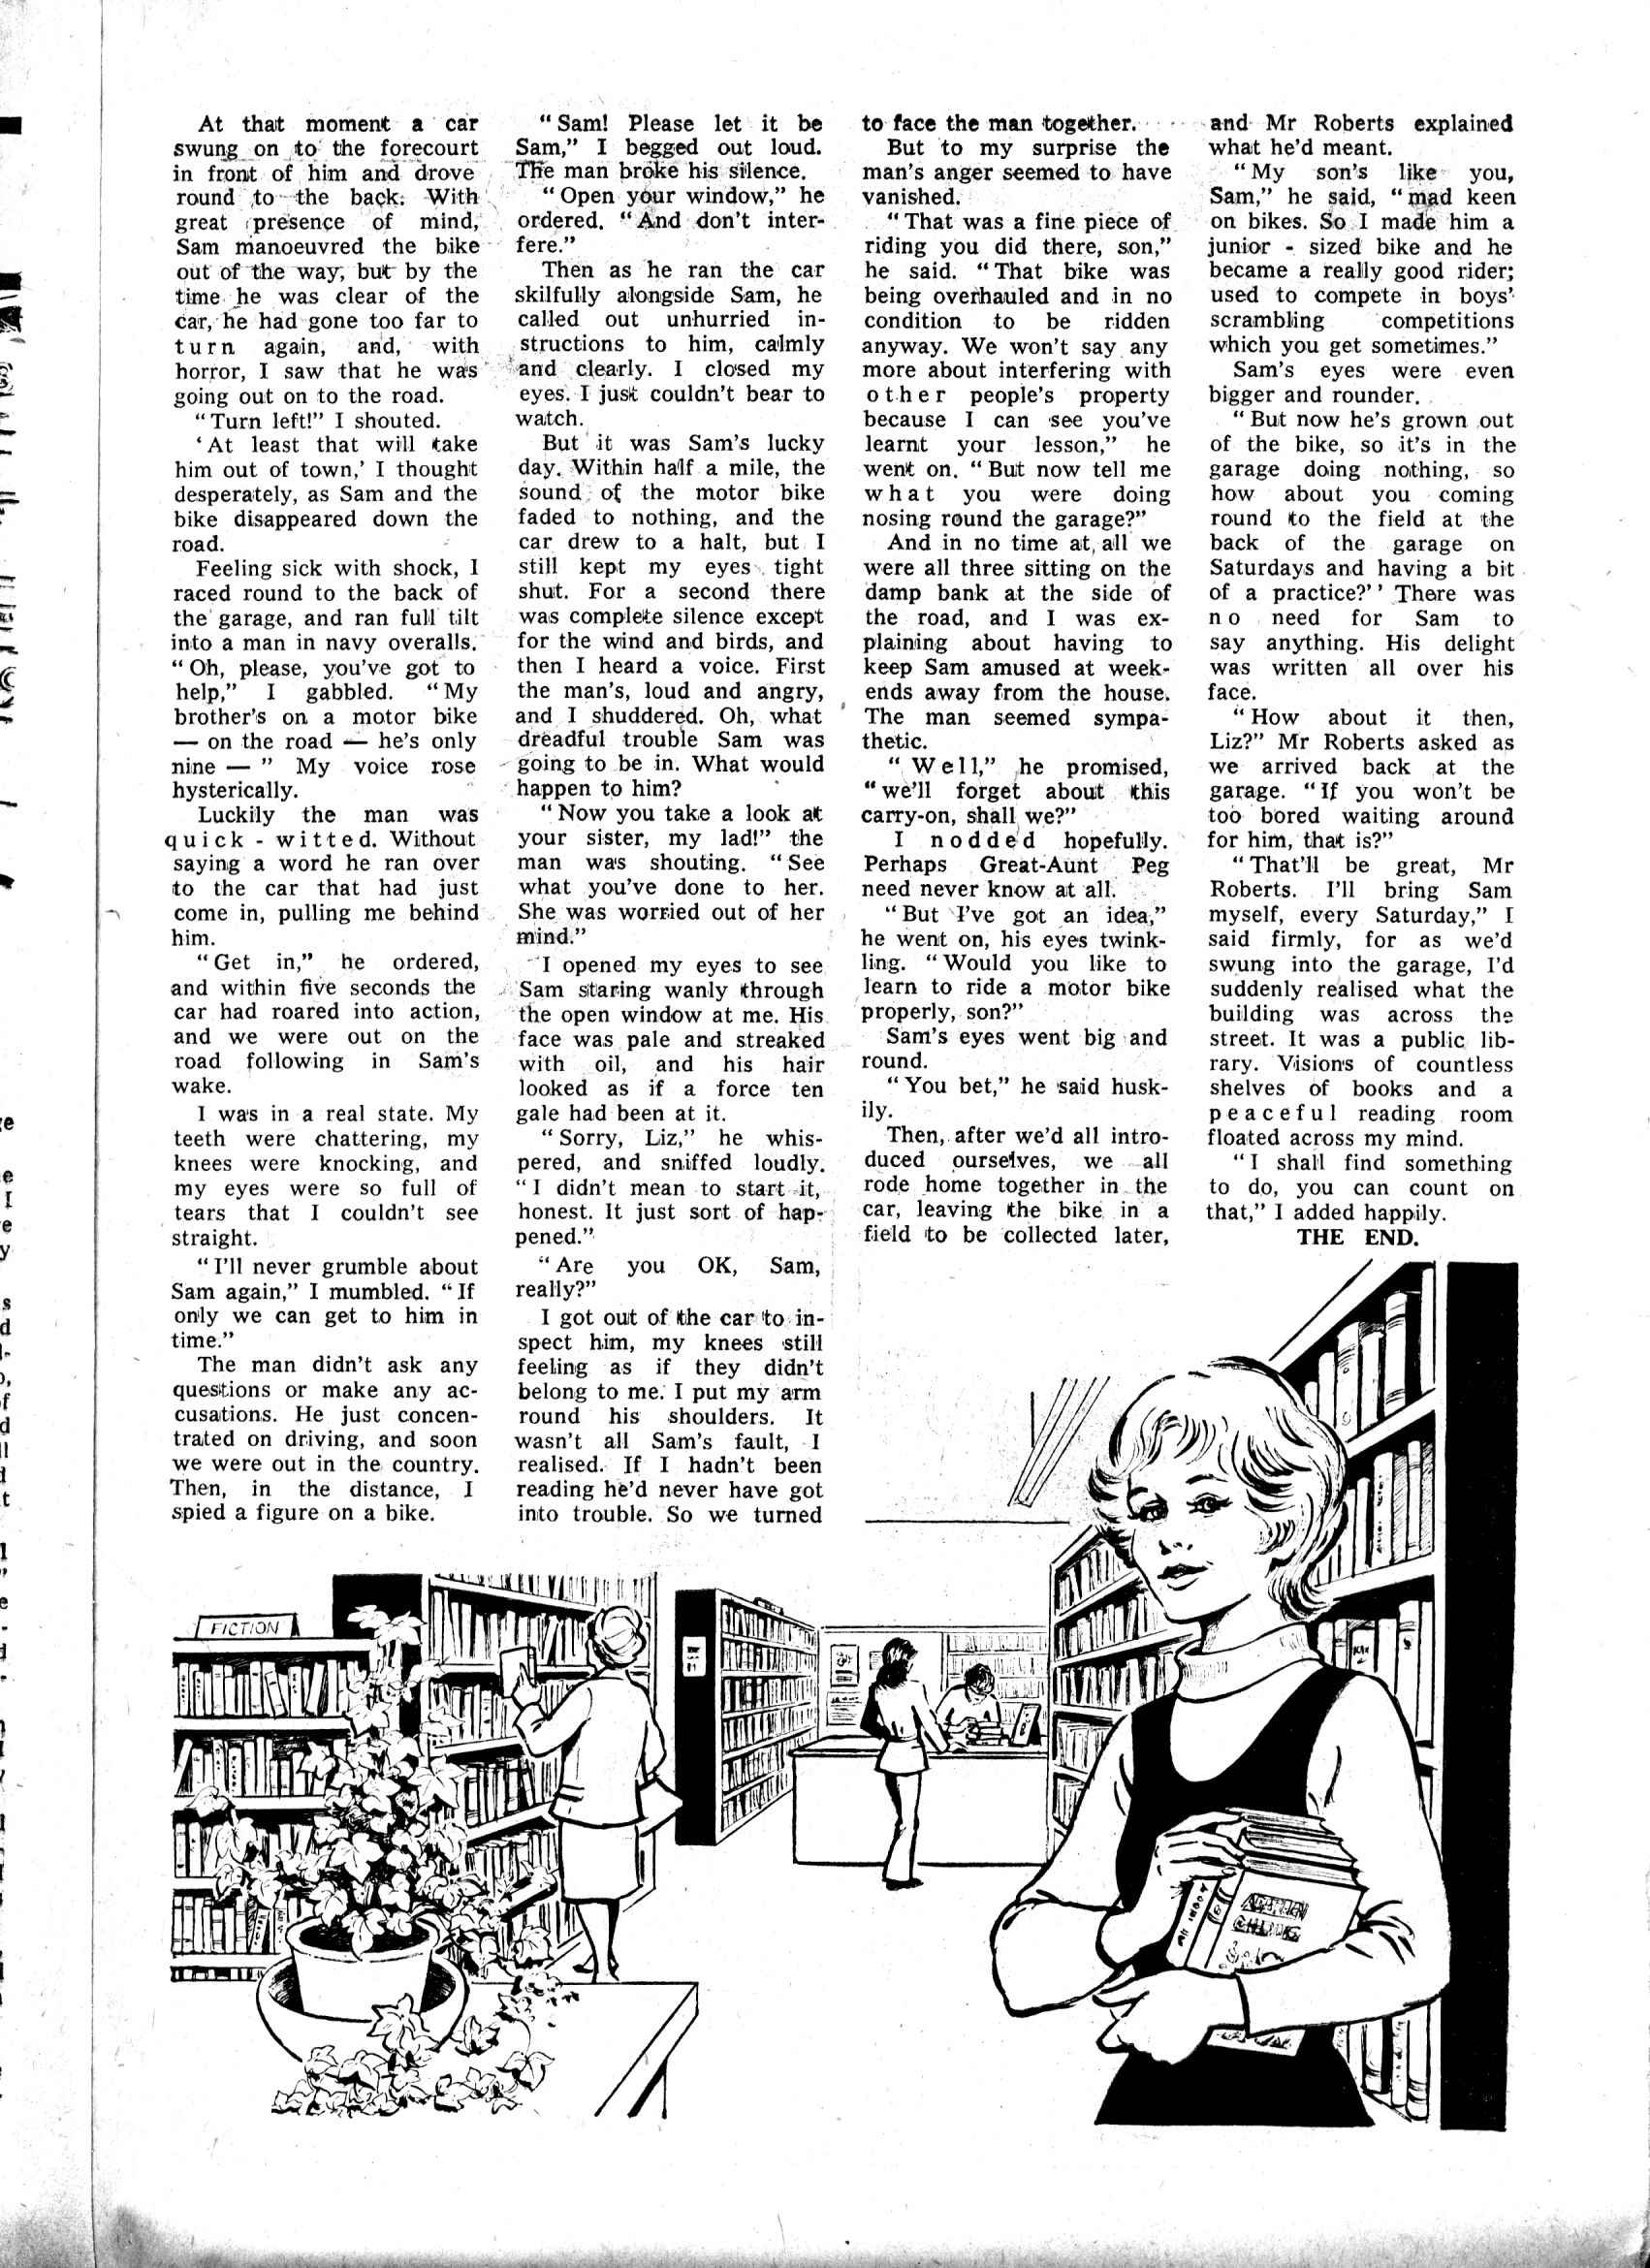 Read online Judy comic -  Issue #807 - 25